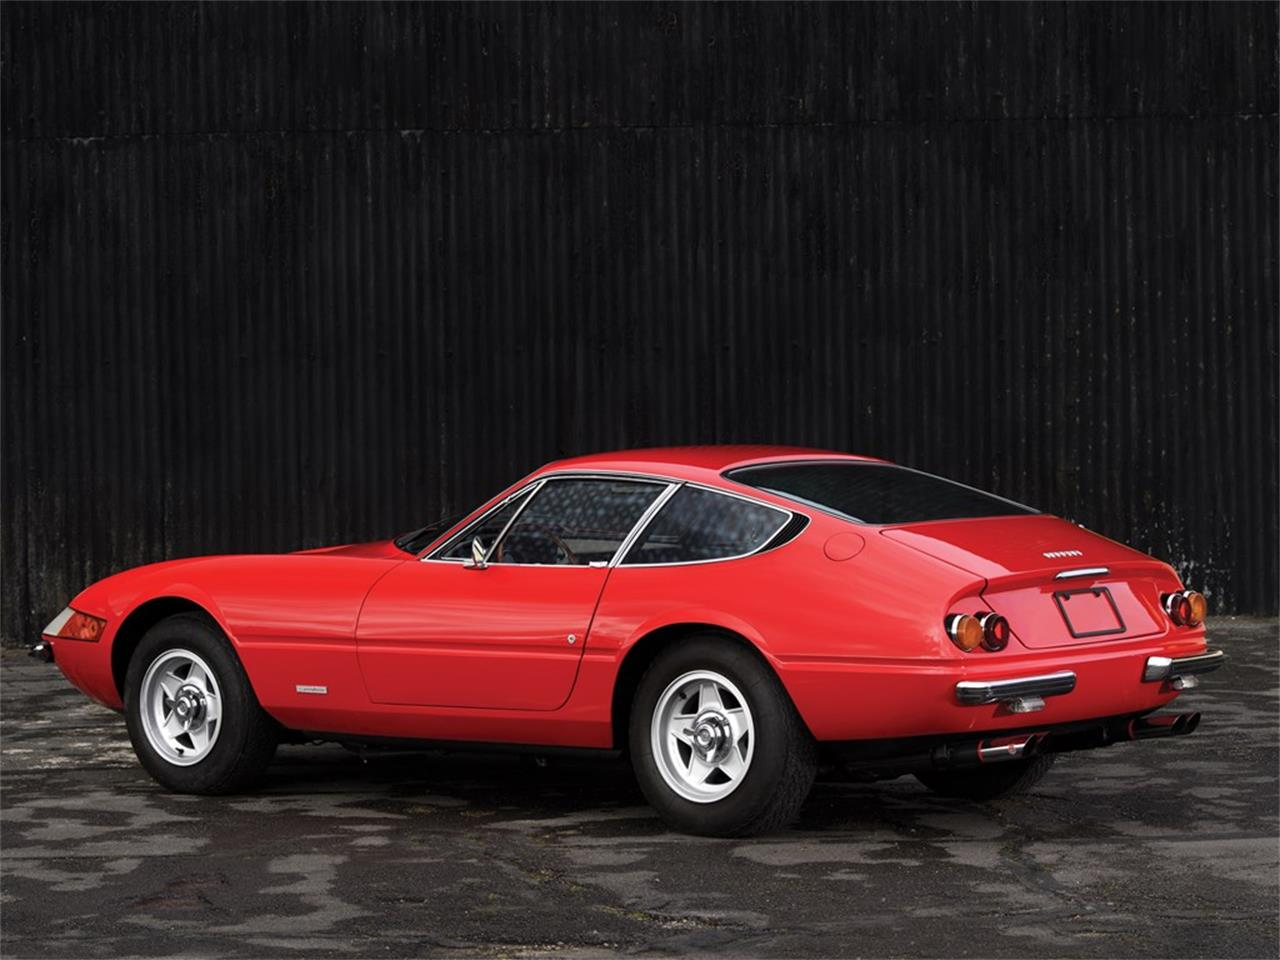 Large Picture of '70 365 GTB/4 Daytona - PO2X